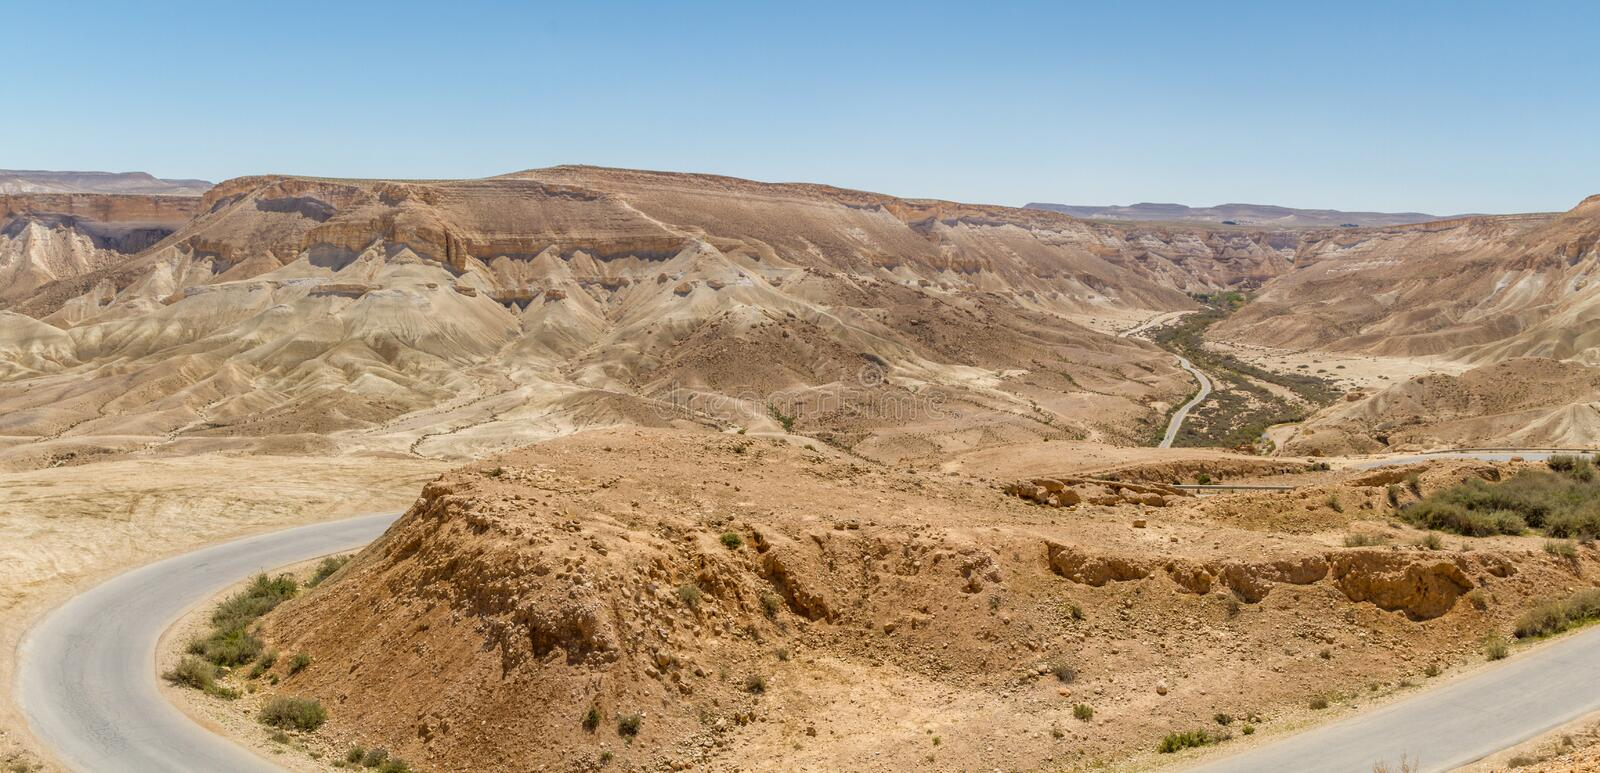 The Makhtesh Ramon, road in Negev desert, Israel stock photography